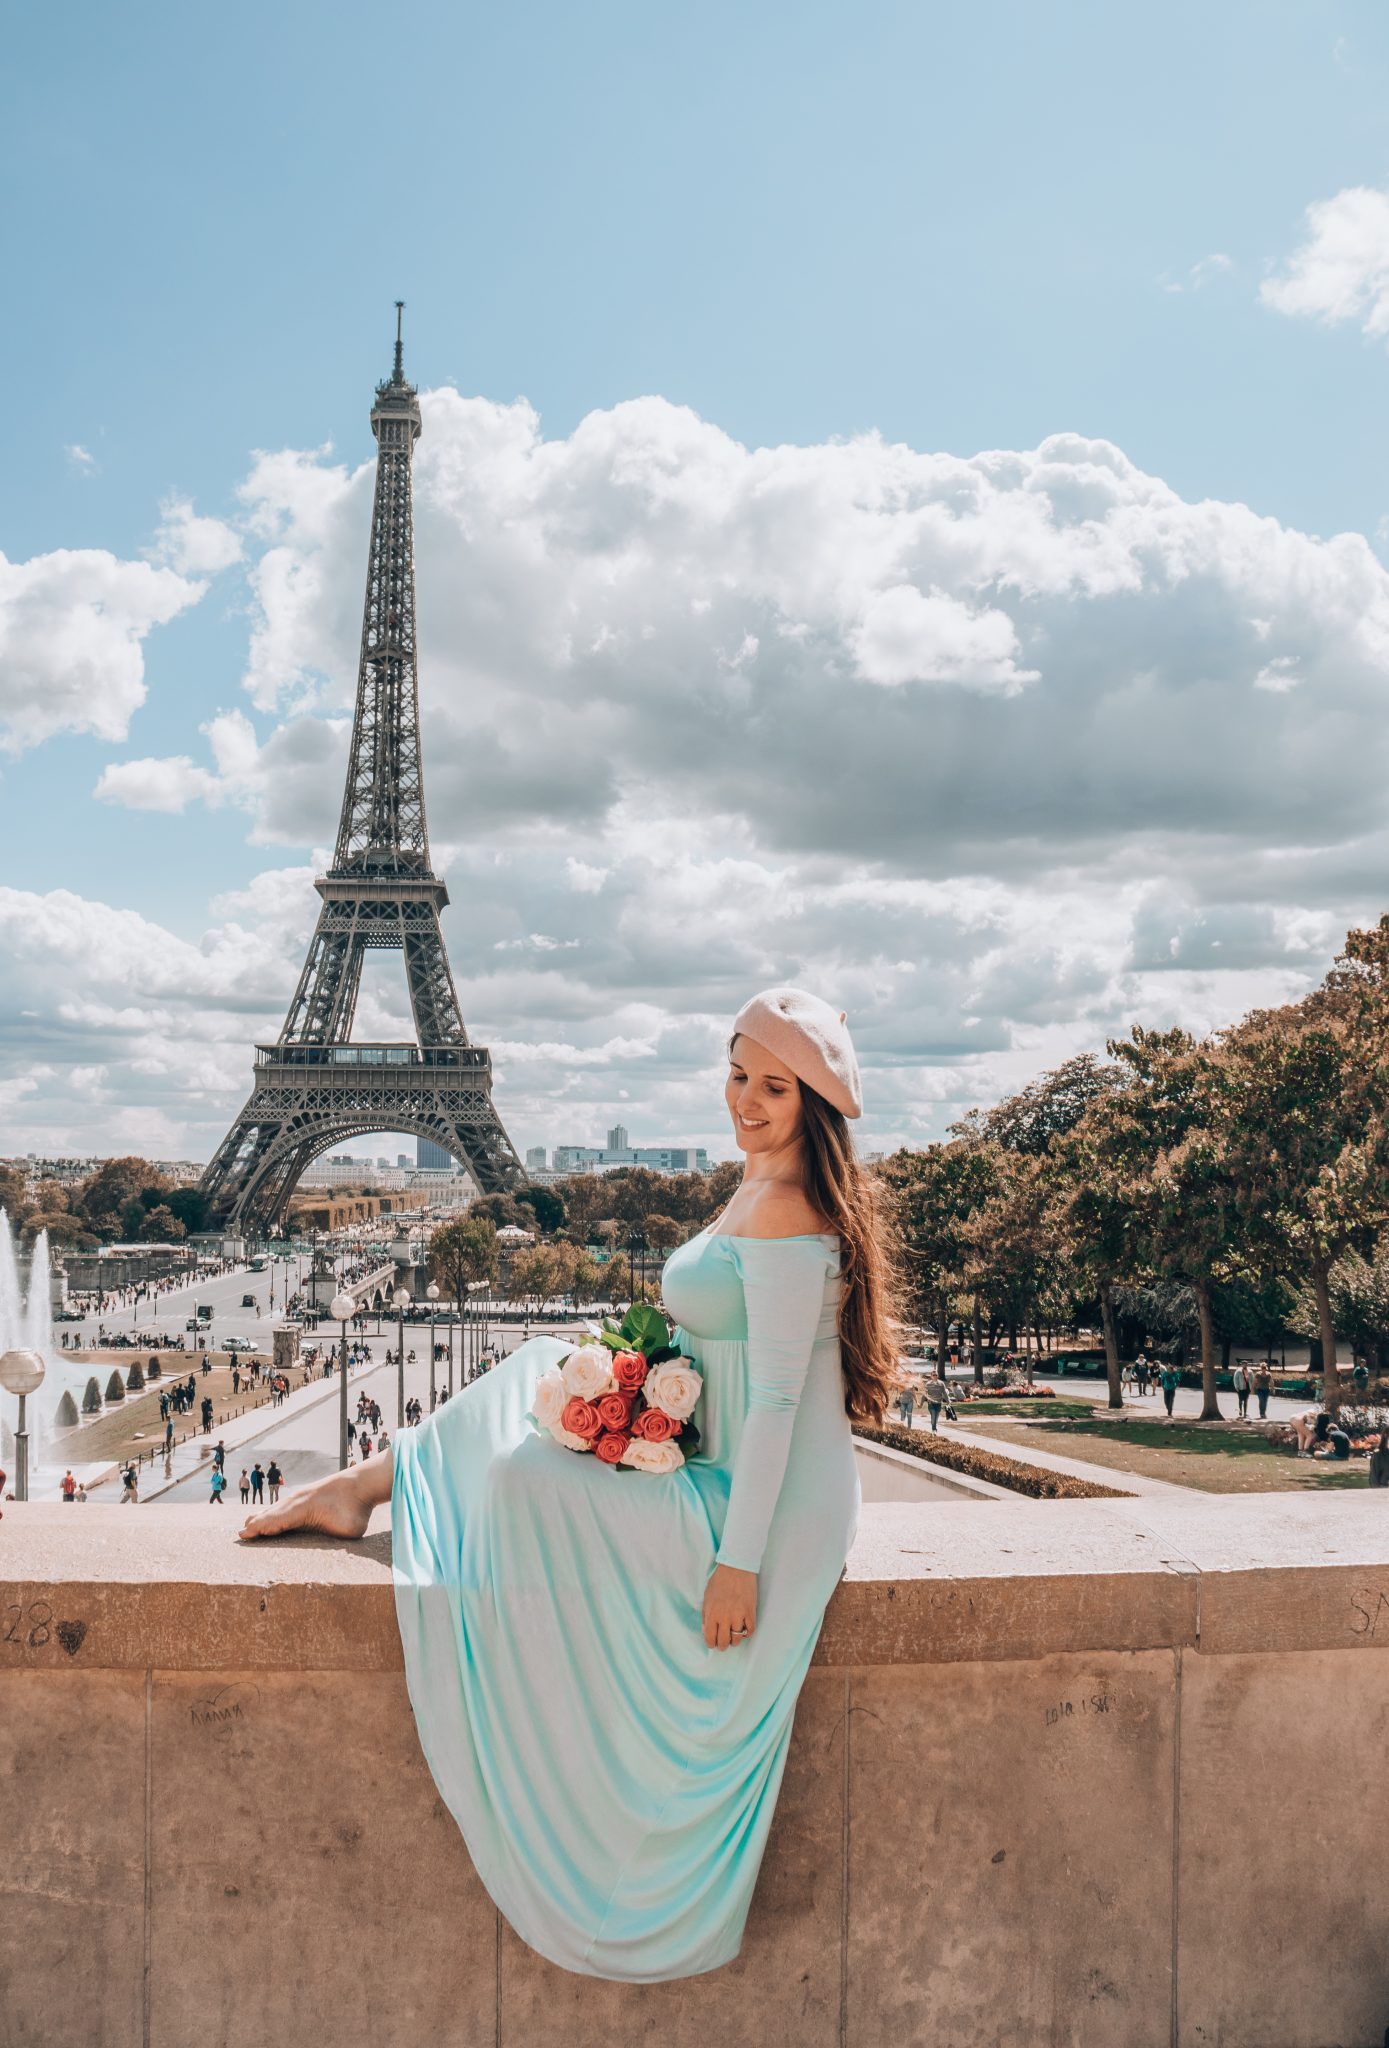 Best Photo Spots in Paris - The Eiffel Tower From Trocadero